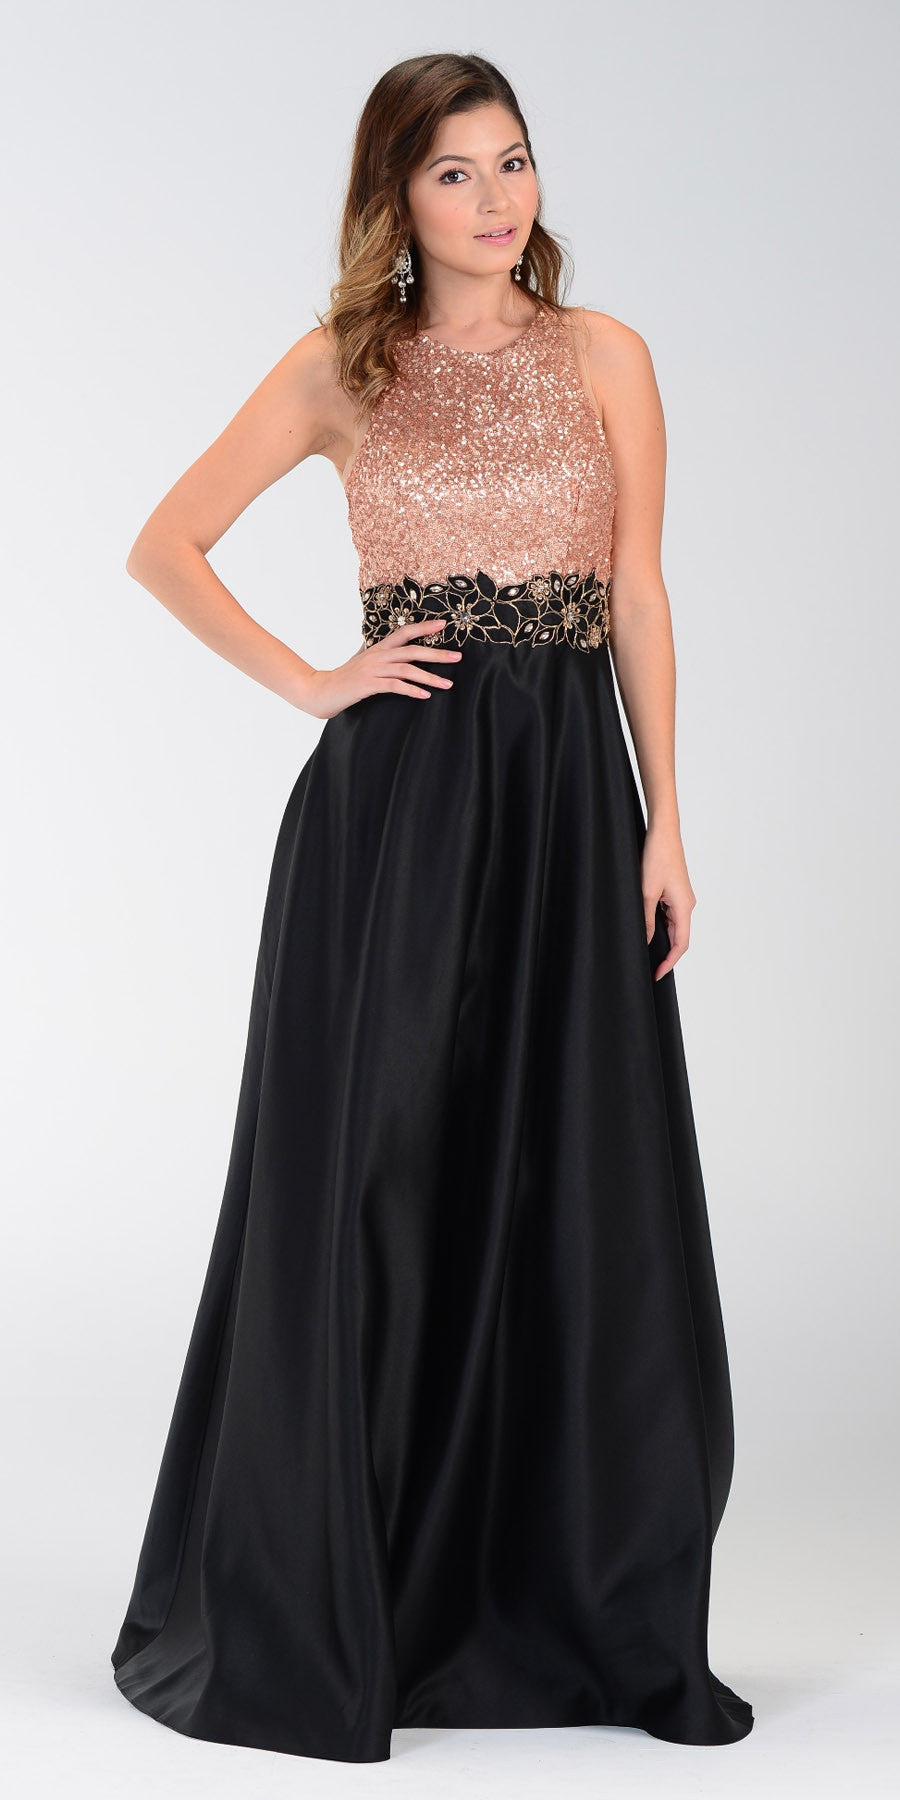 7a2e6969bf7 ON SPECIAL LIMITED STOCK - Poly USA 7330 Black Gold Sequin Top Prom Dress  Long Satin. Tap to expand